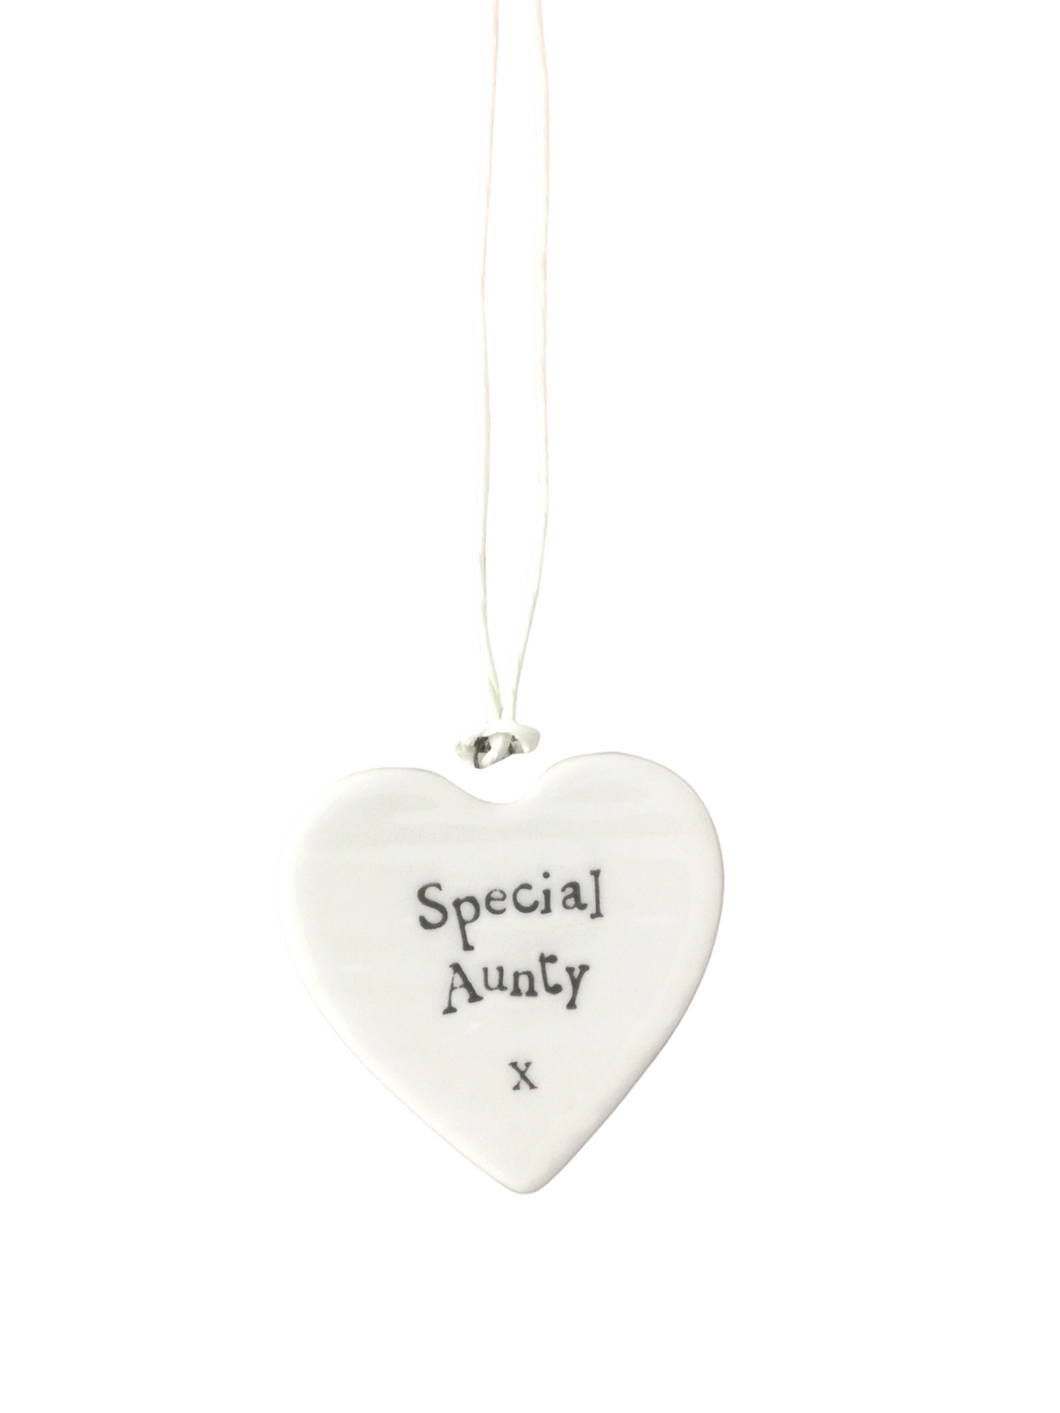 East of India Hanging Small Porcelain Heart - Special Aunty